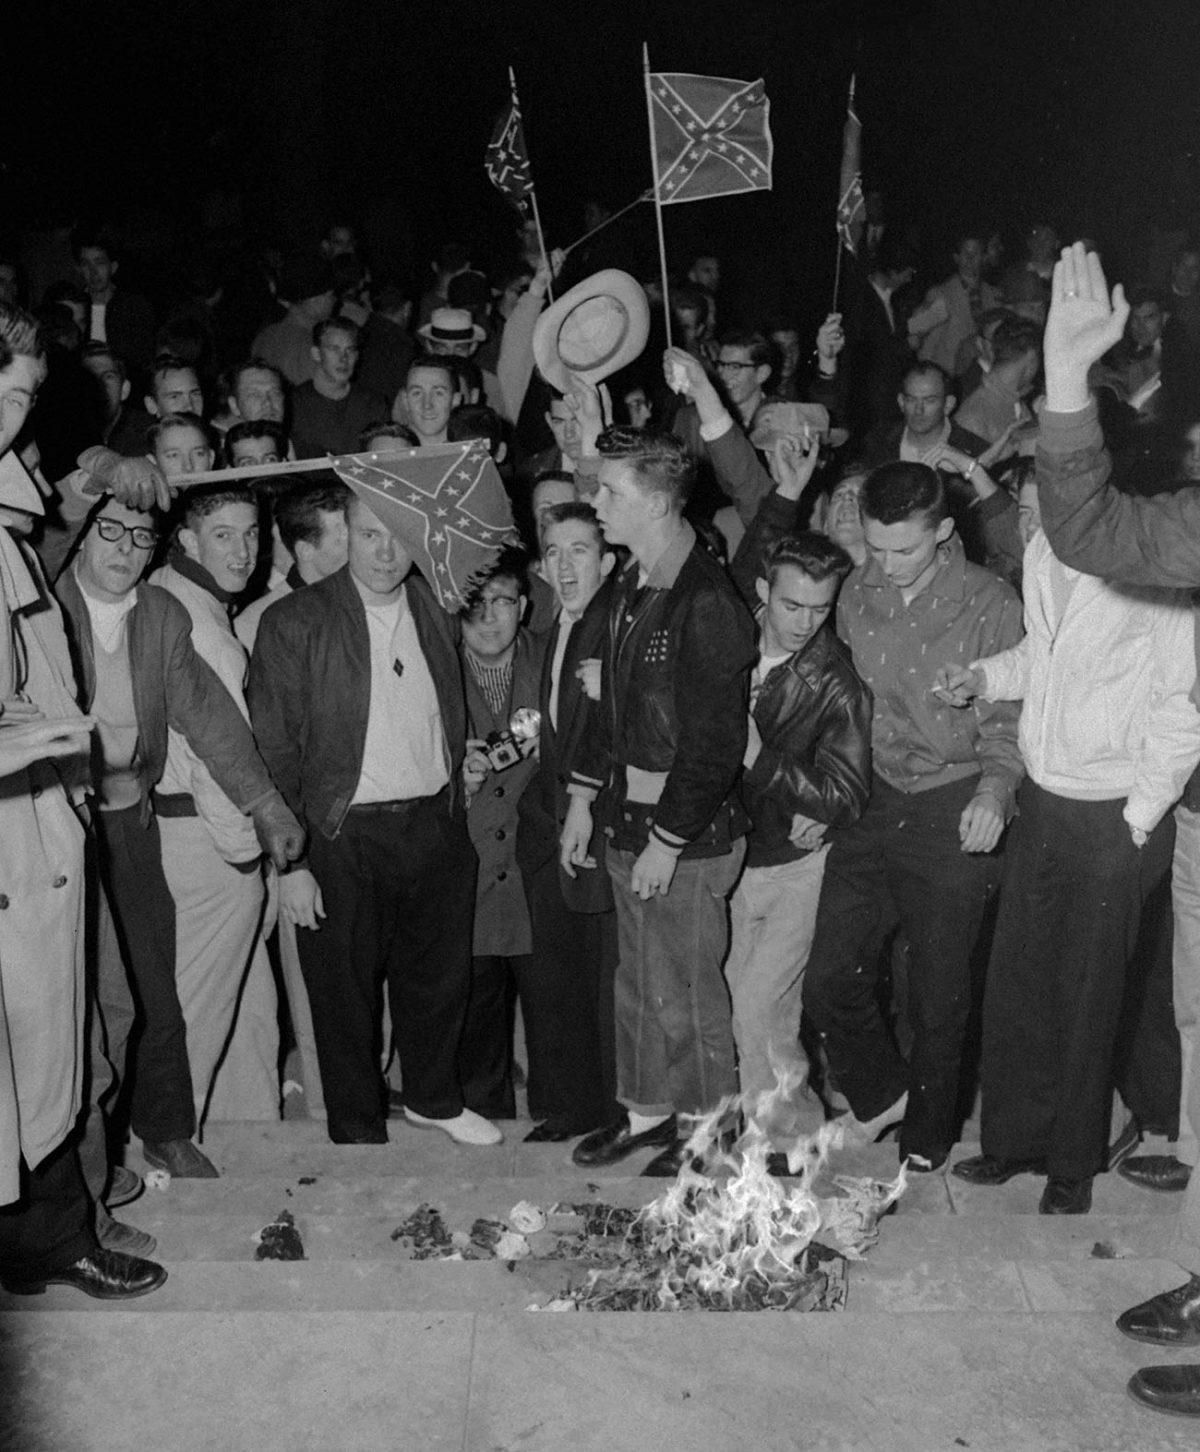 Students at the University of Alabama burn desegregation literature in Tuscaloosa, Alabama, on February 6, 1956, in response to the enrollment of Autherine Lucy. (Library of Congress/AP)